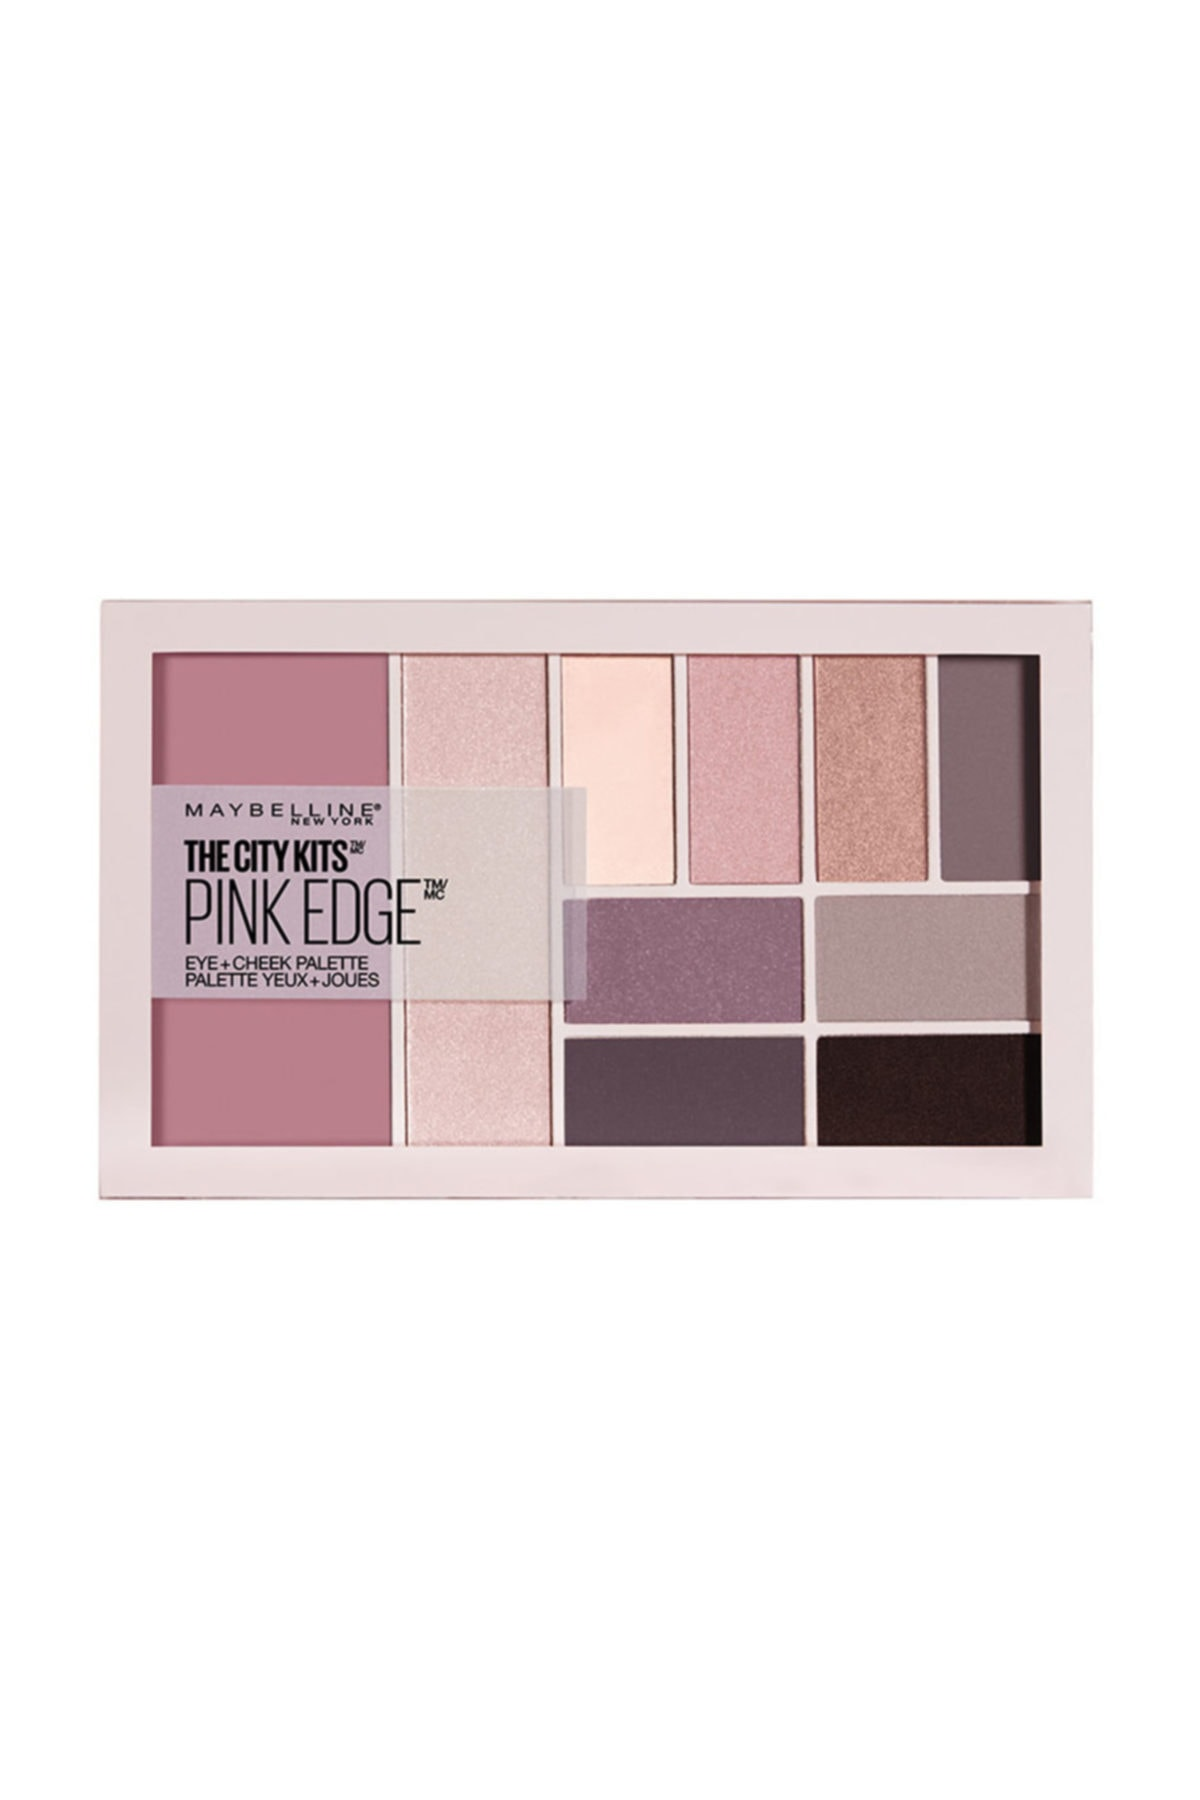 Göz ve Ten Paleti - The City Kits Pallette Pink Edge 3600531434632